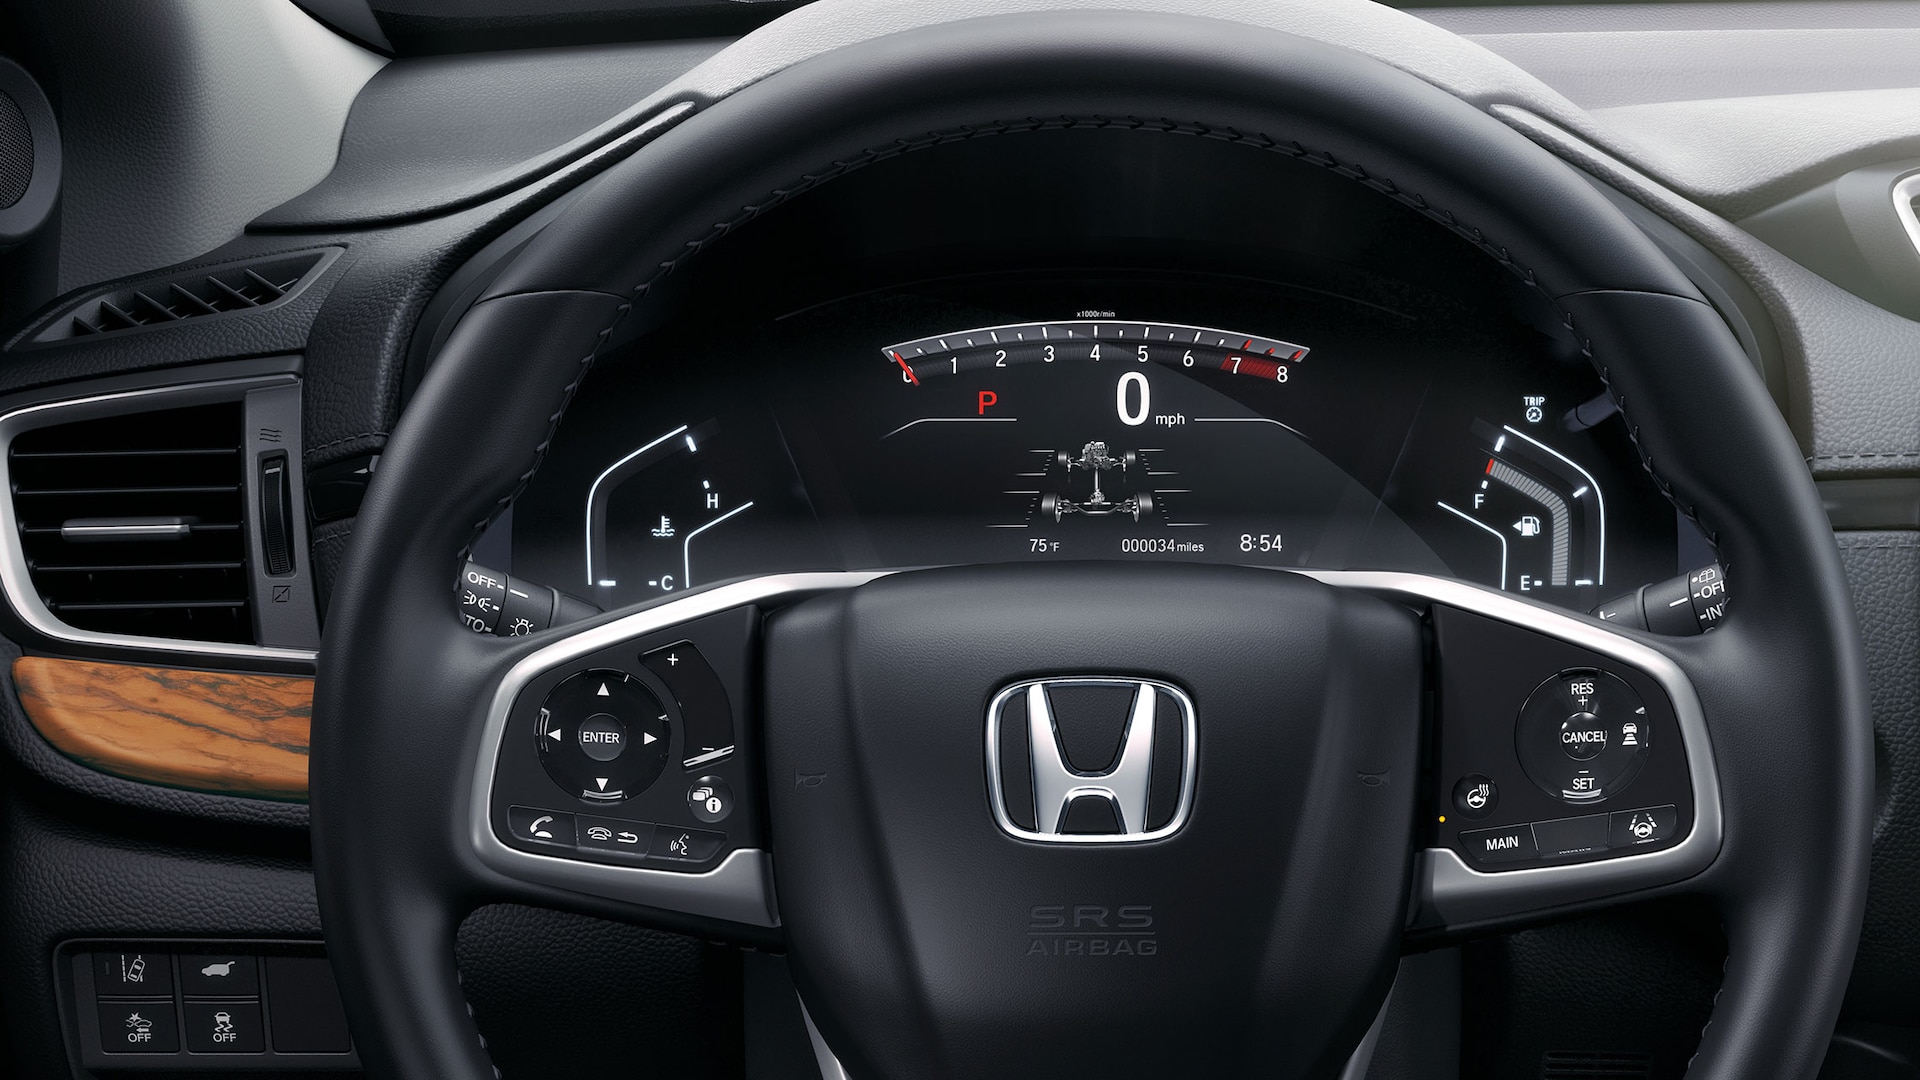 Interior view of the 2020 Honda CR-V with Honda Genuine Accessory heated steering wheel and control switch.